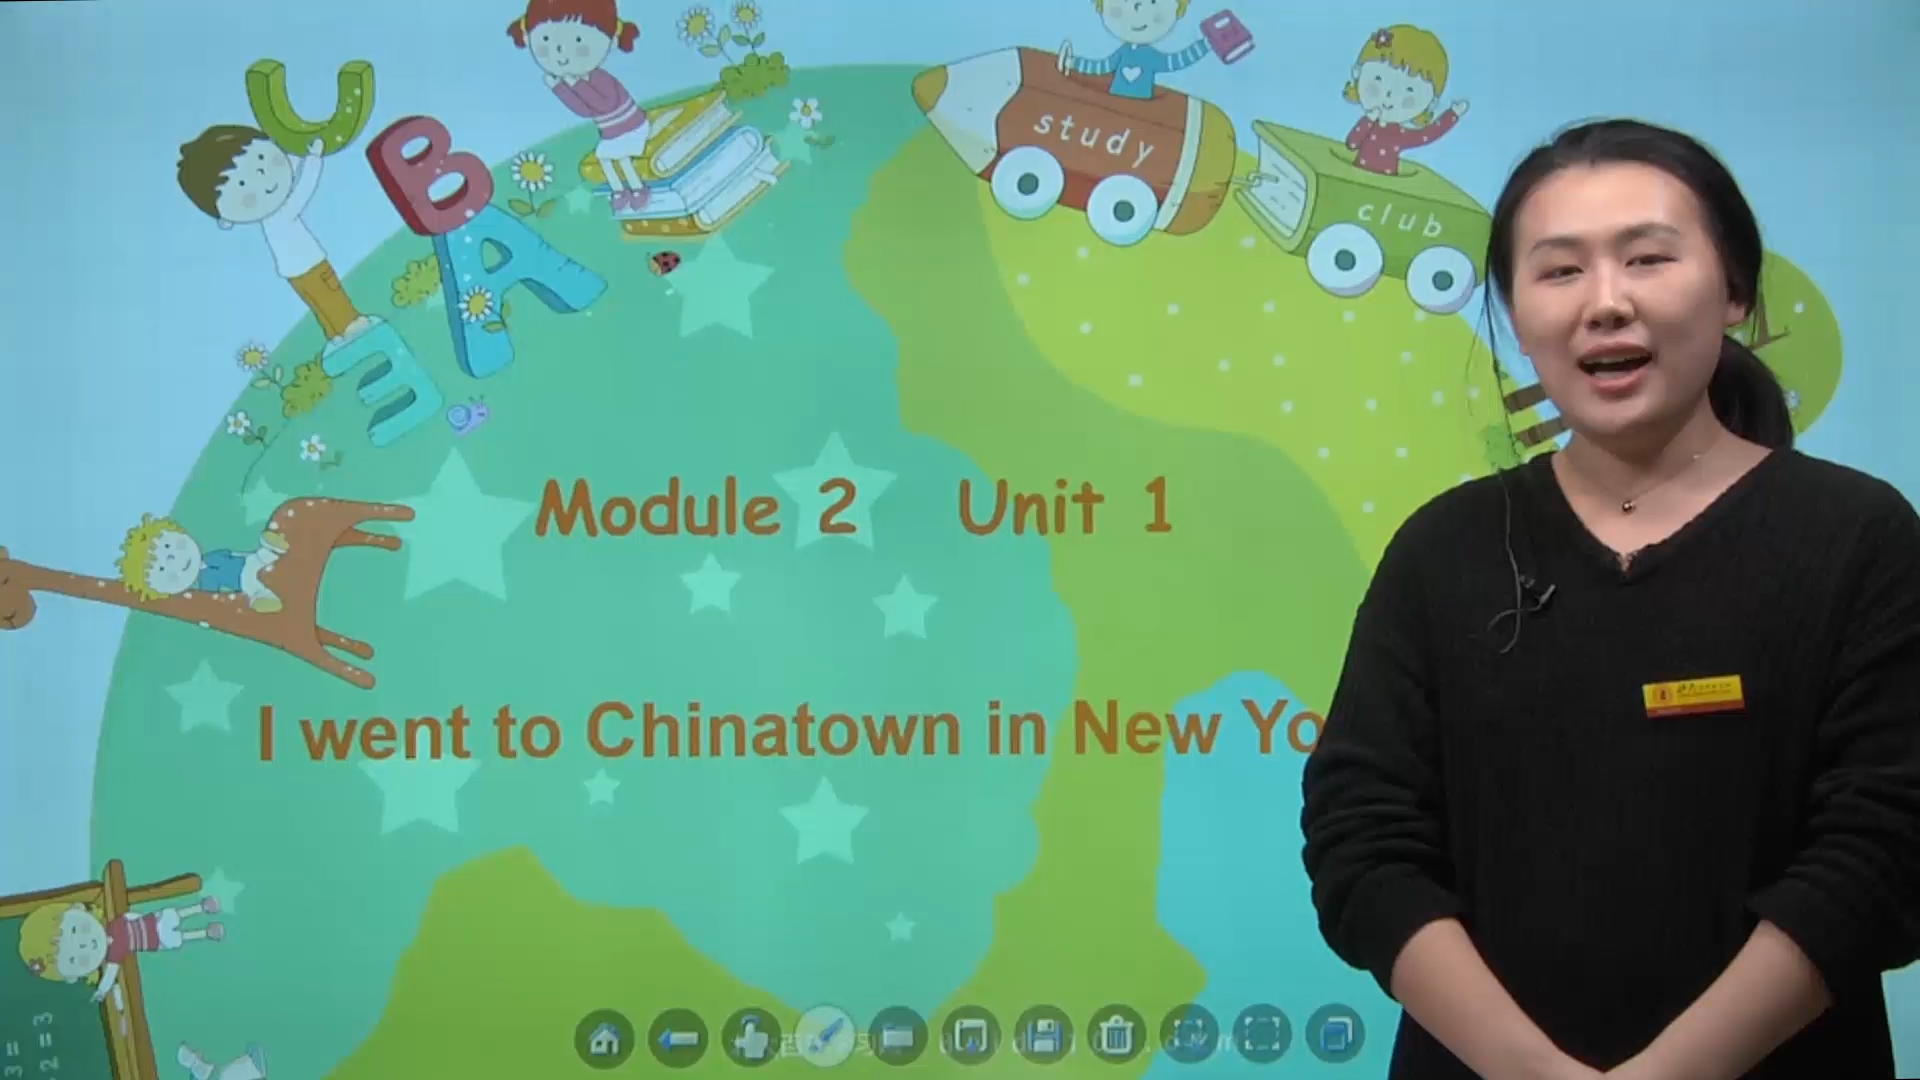 六年级英语上册 Module 2 Unit 1 I went to Chinatown in New York yesterday. lesson1同步课堂视频